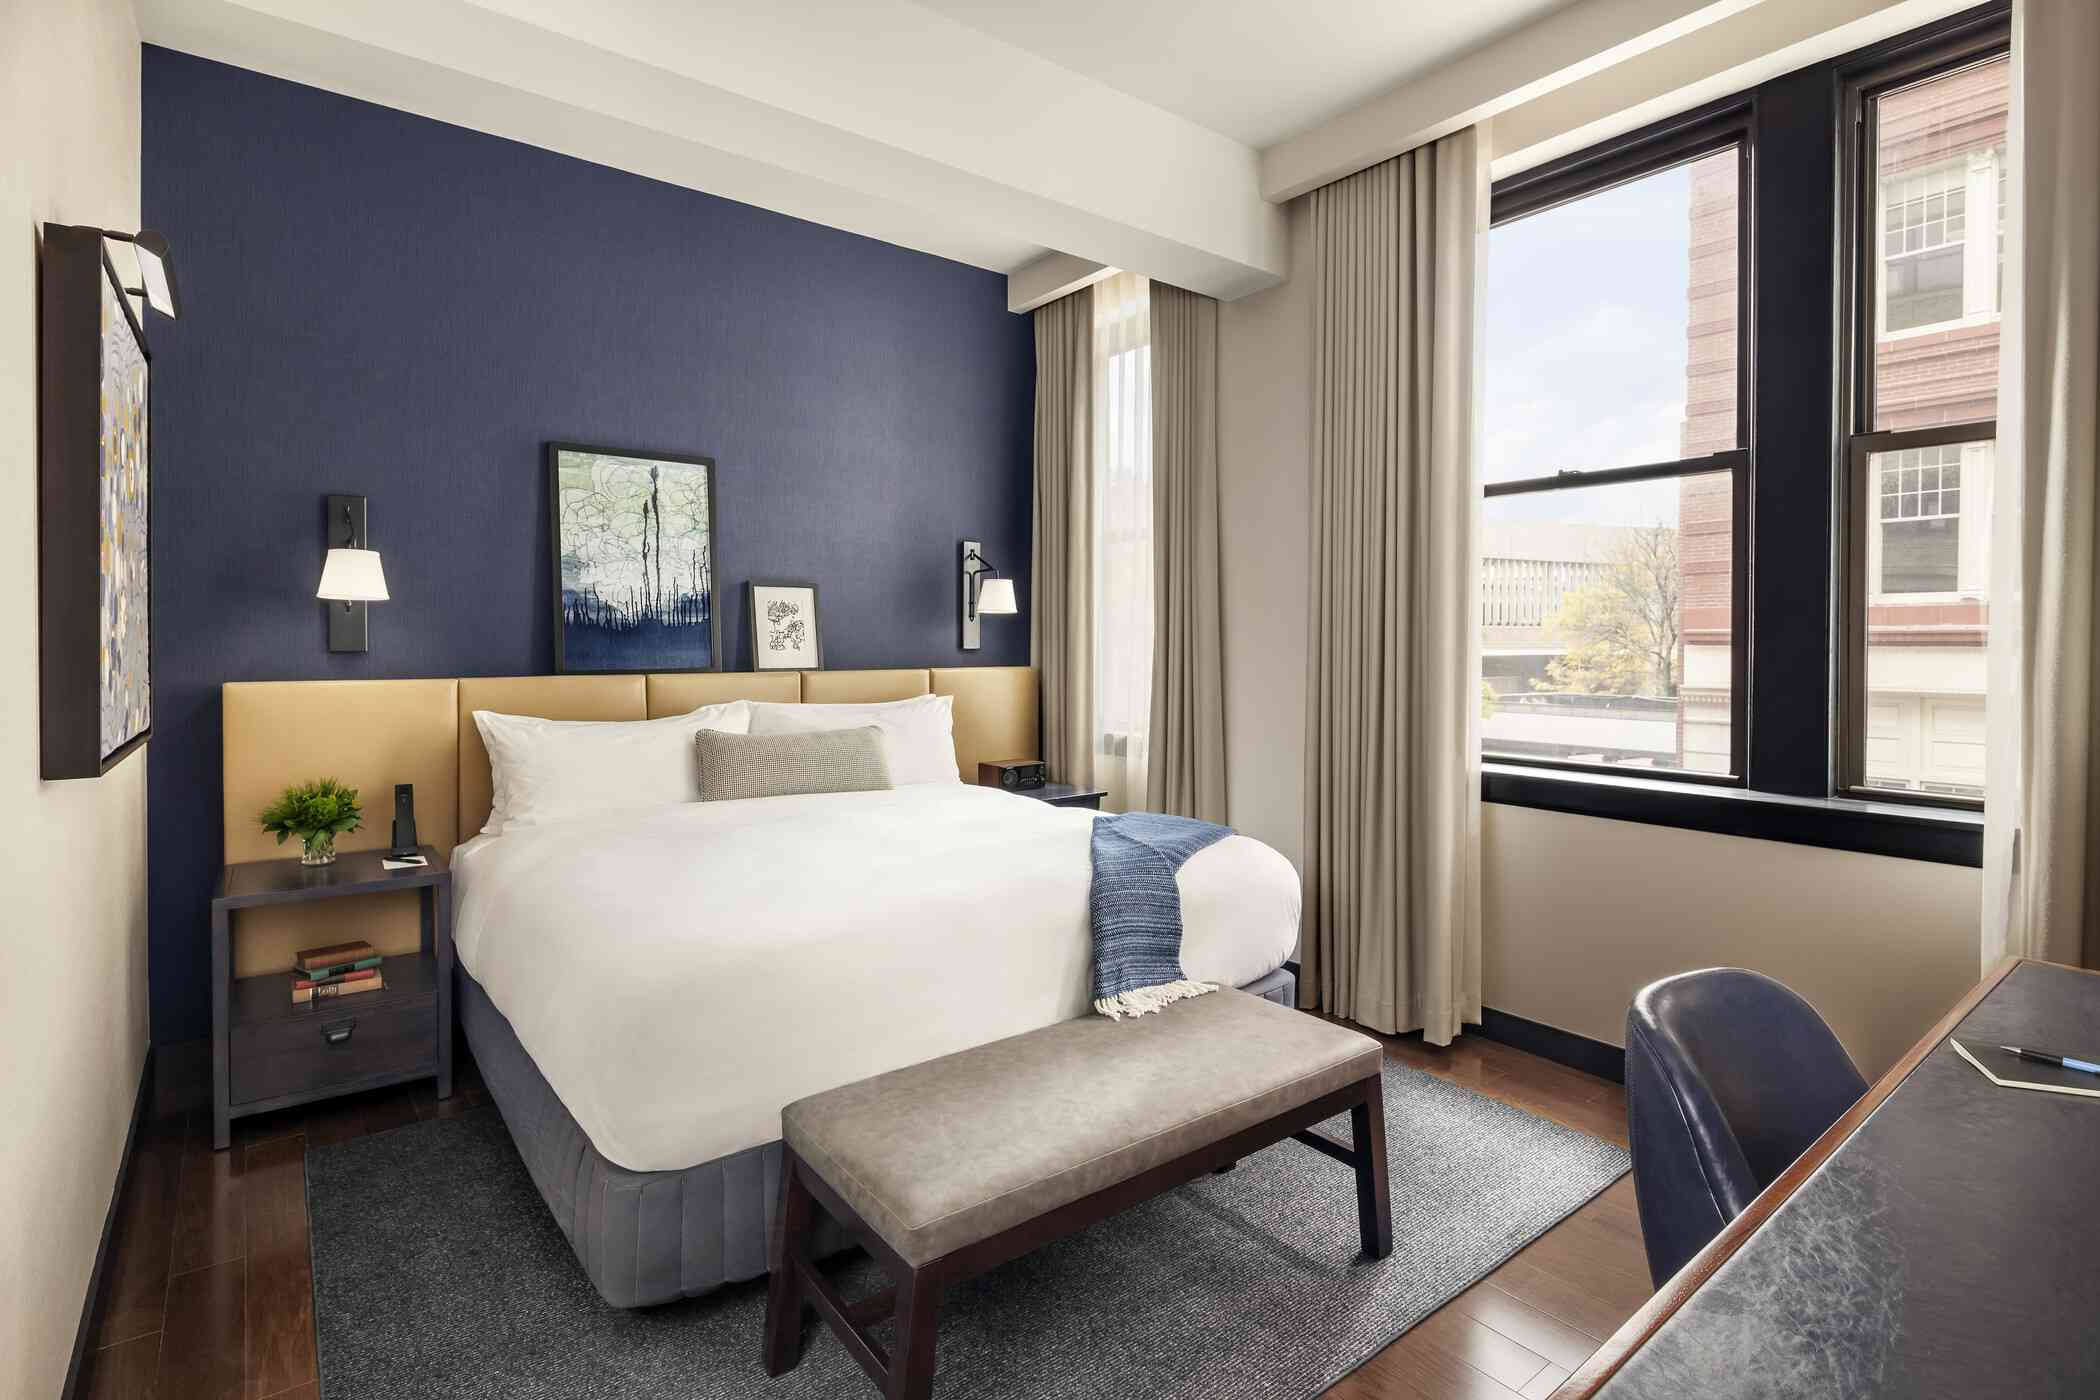 Hotel room with grey-blue color scheme